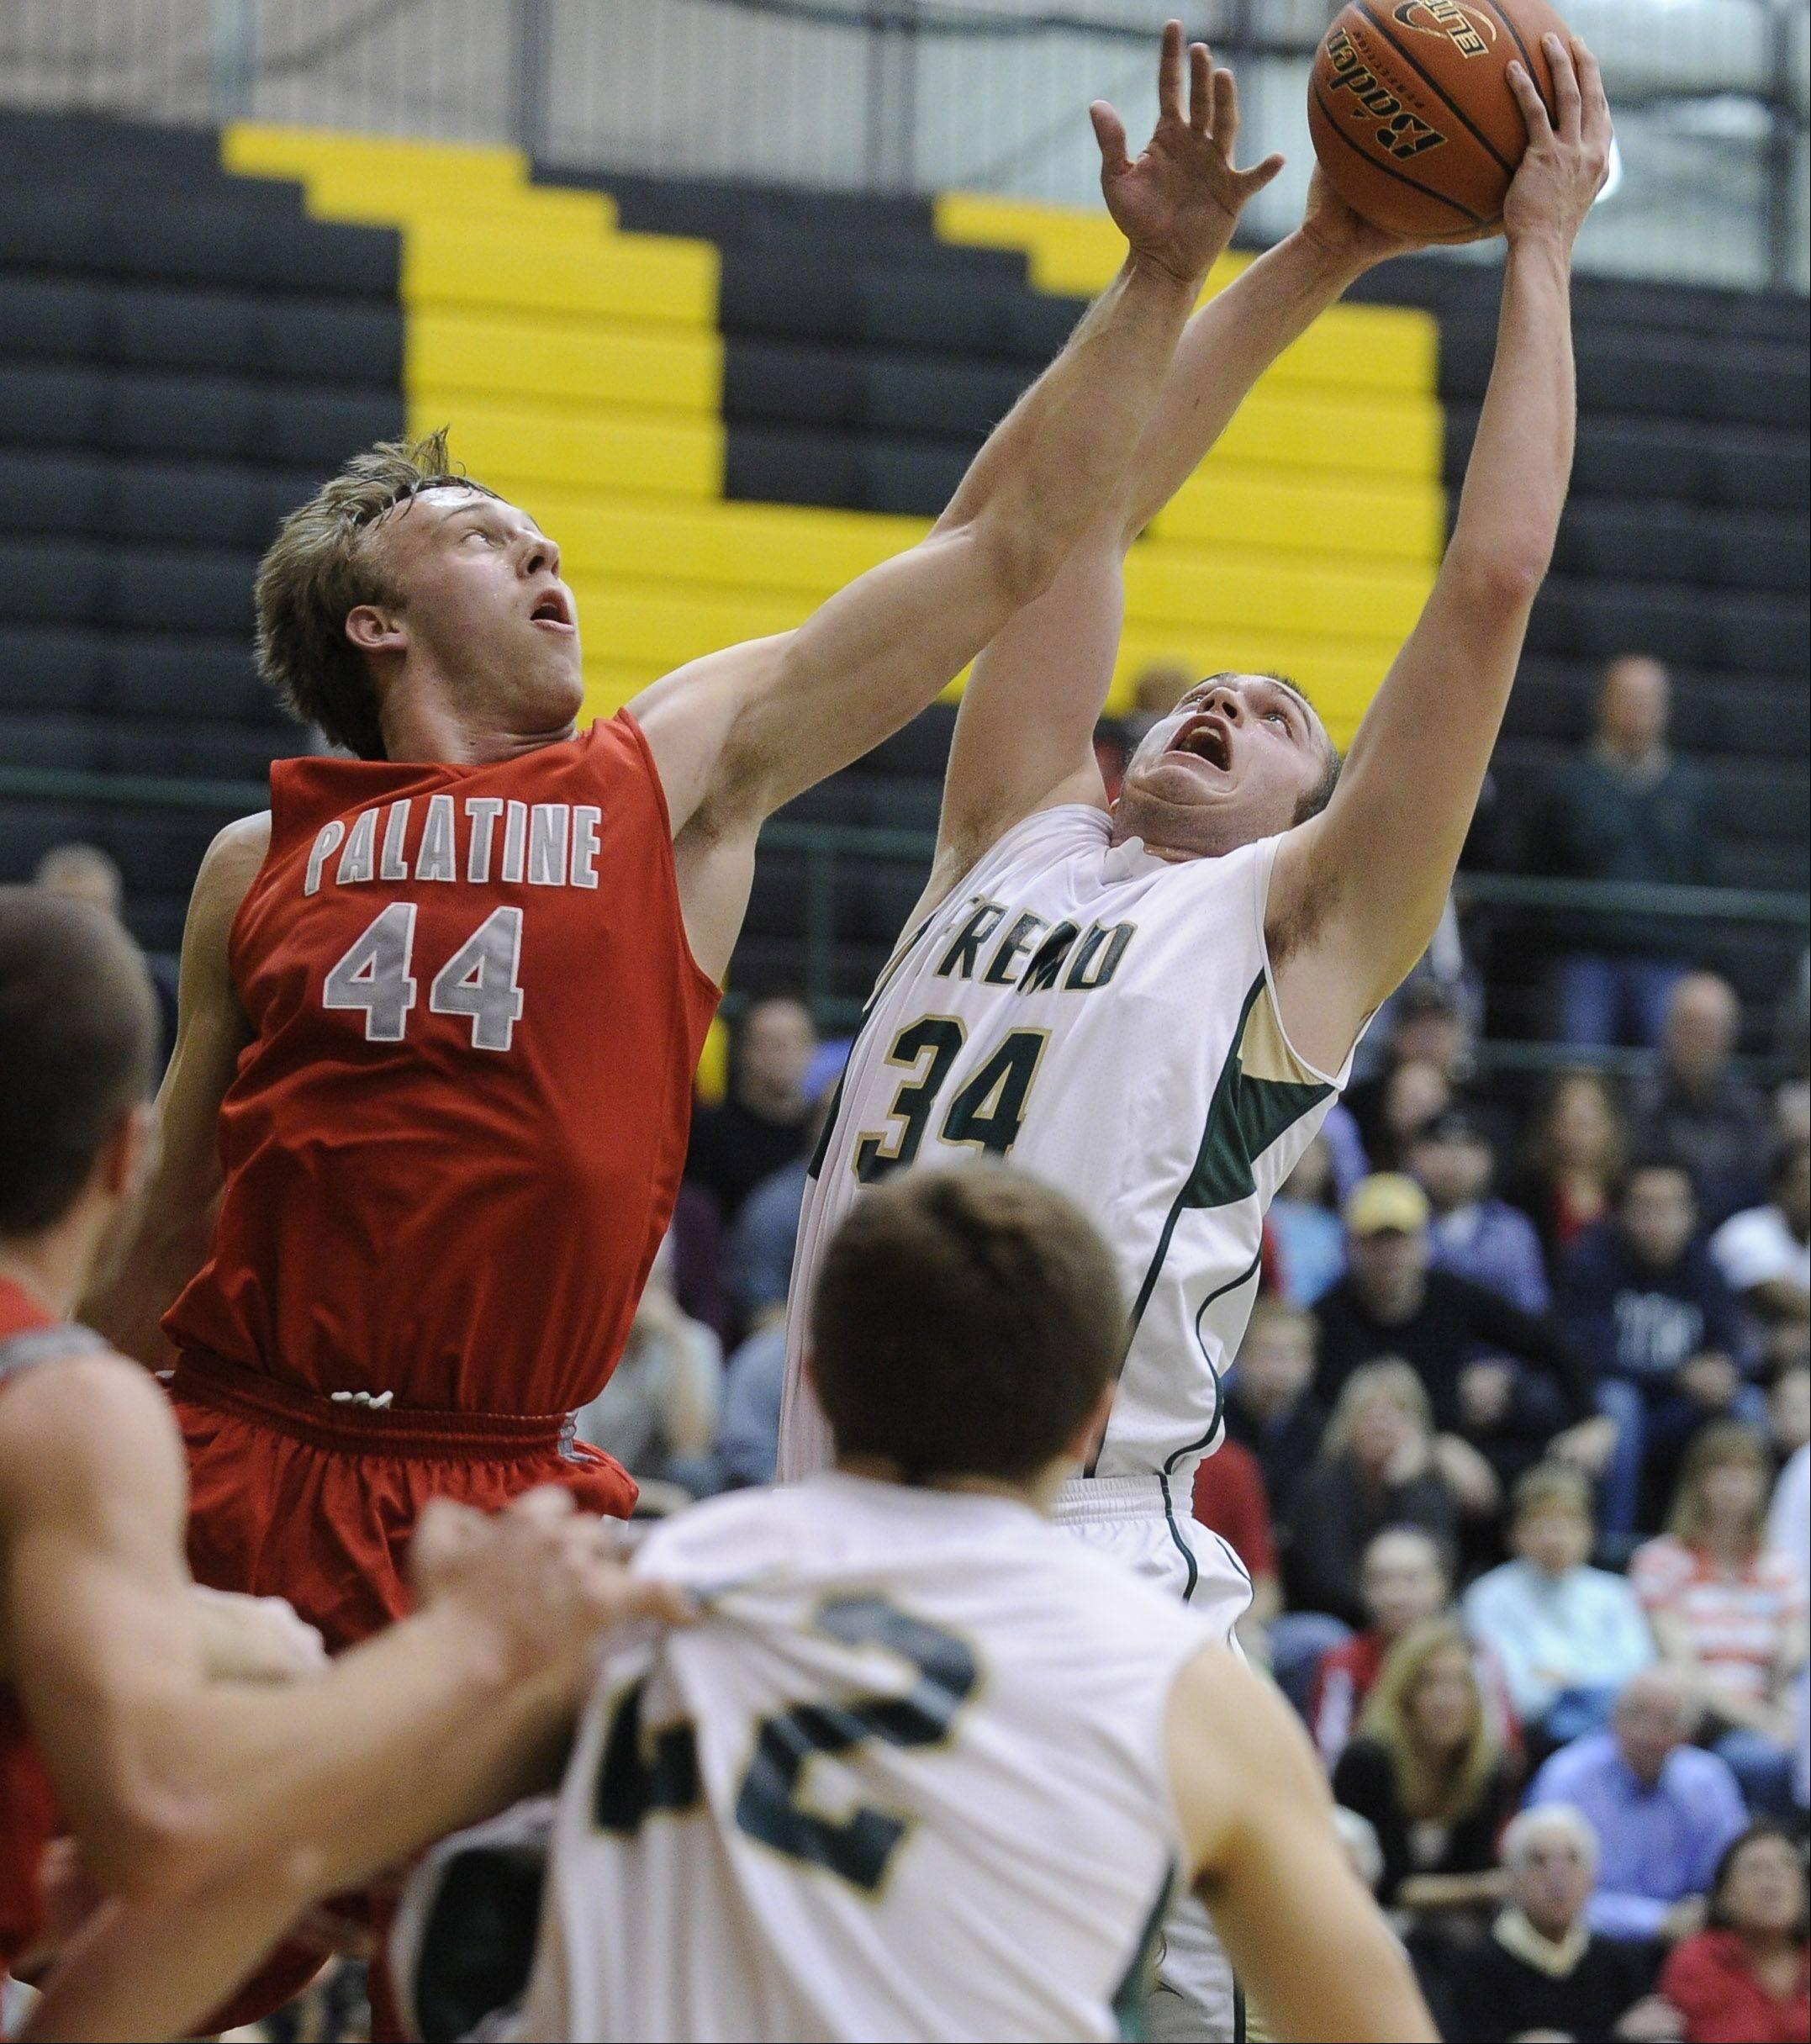 Palatine's Josh Baldus, left, and Fremd's Ben Carlson battle for the rebound in the first half Friday at Fremd.